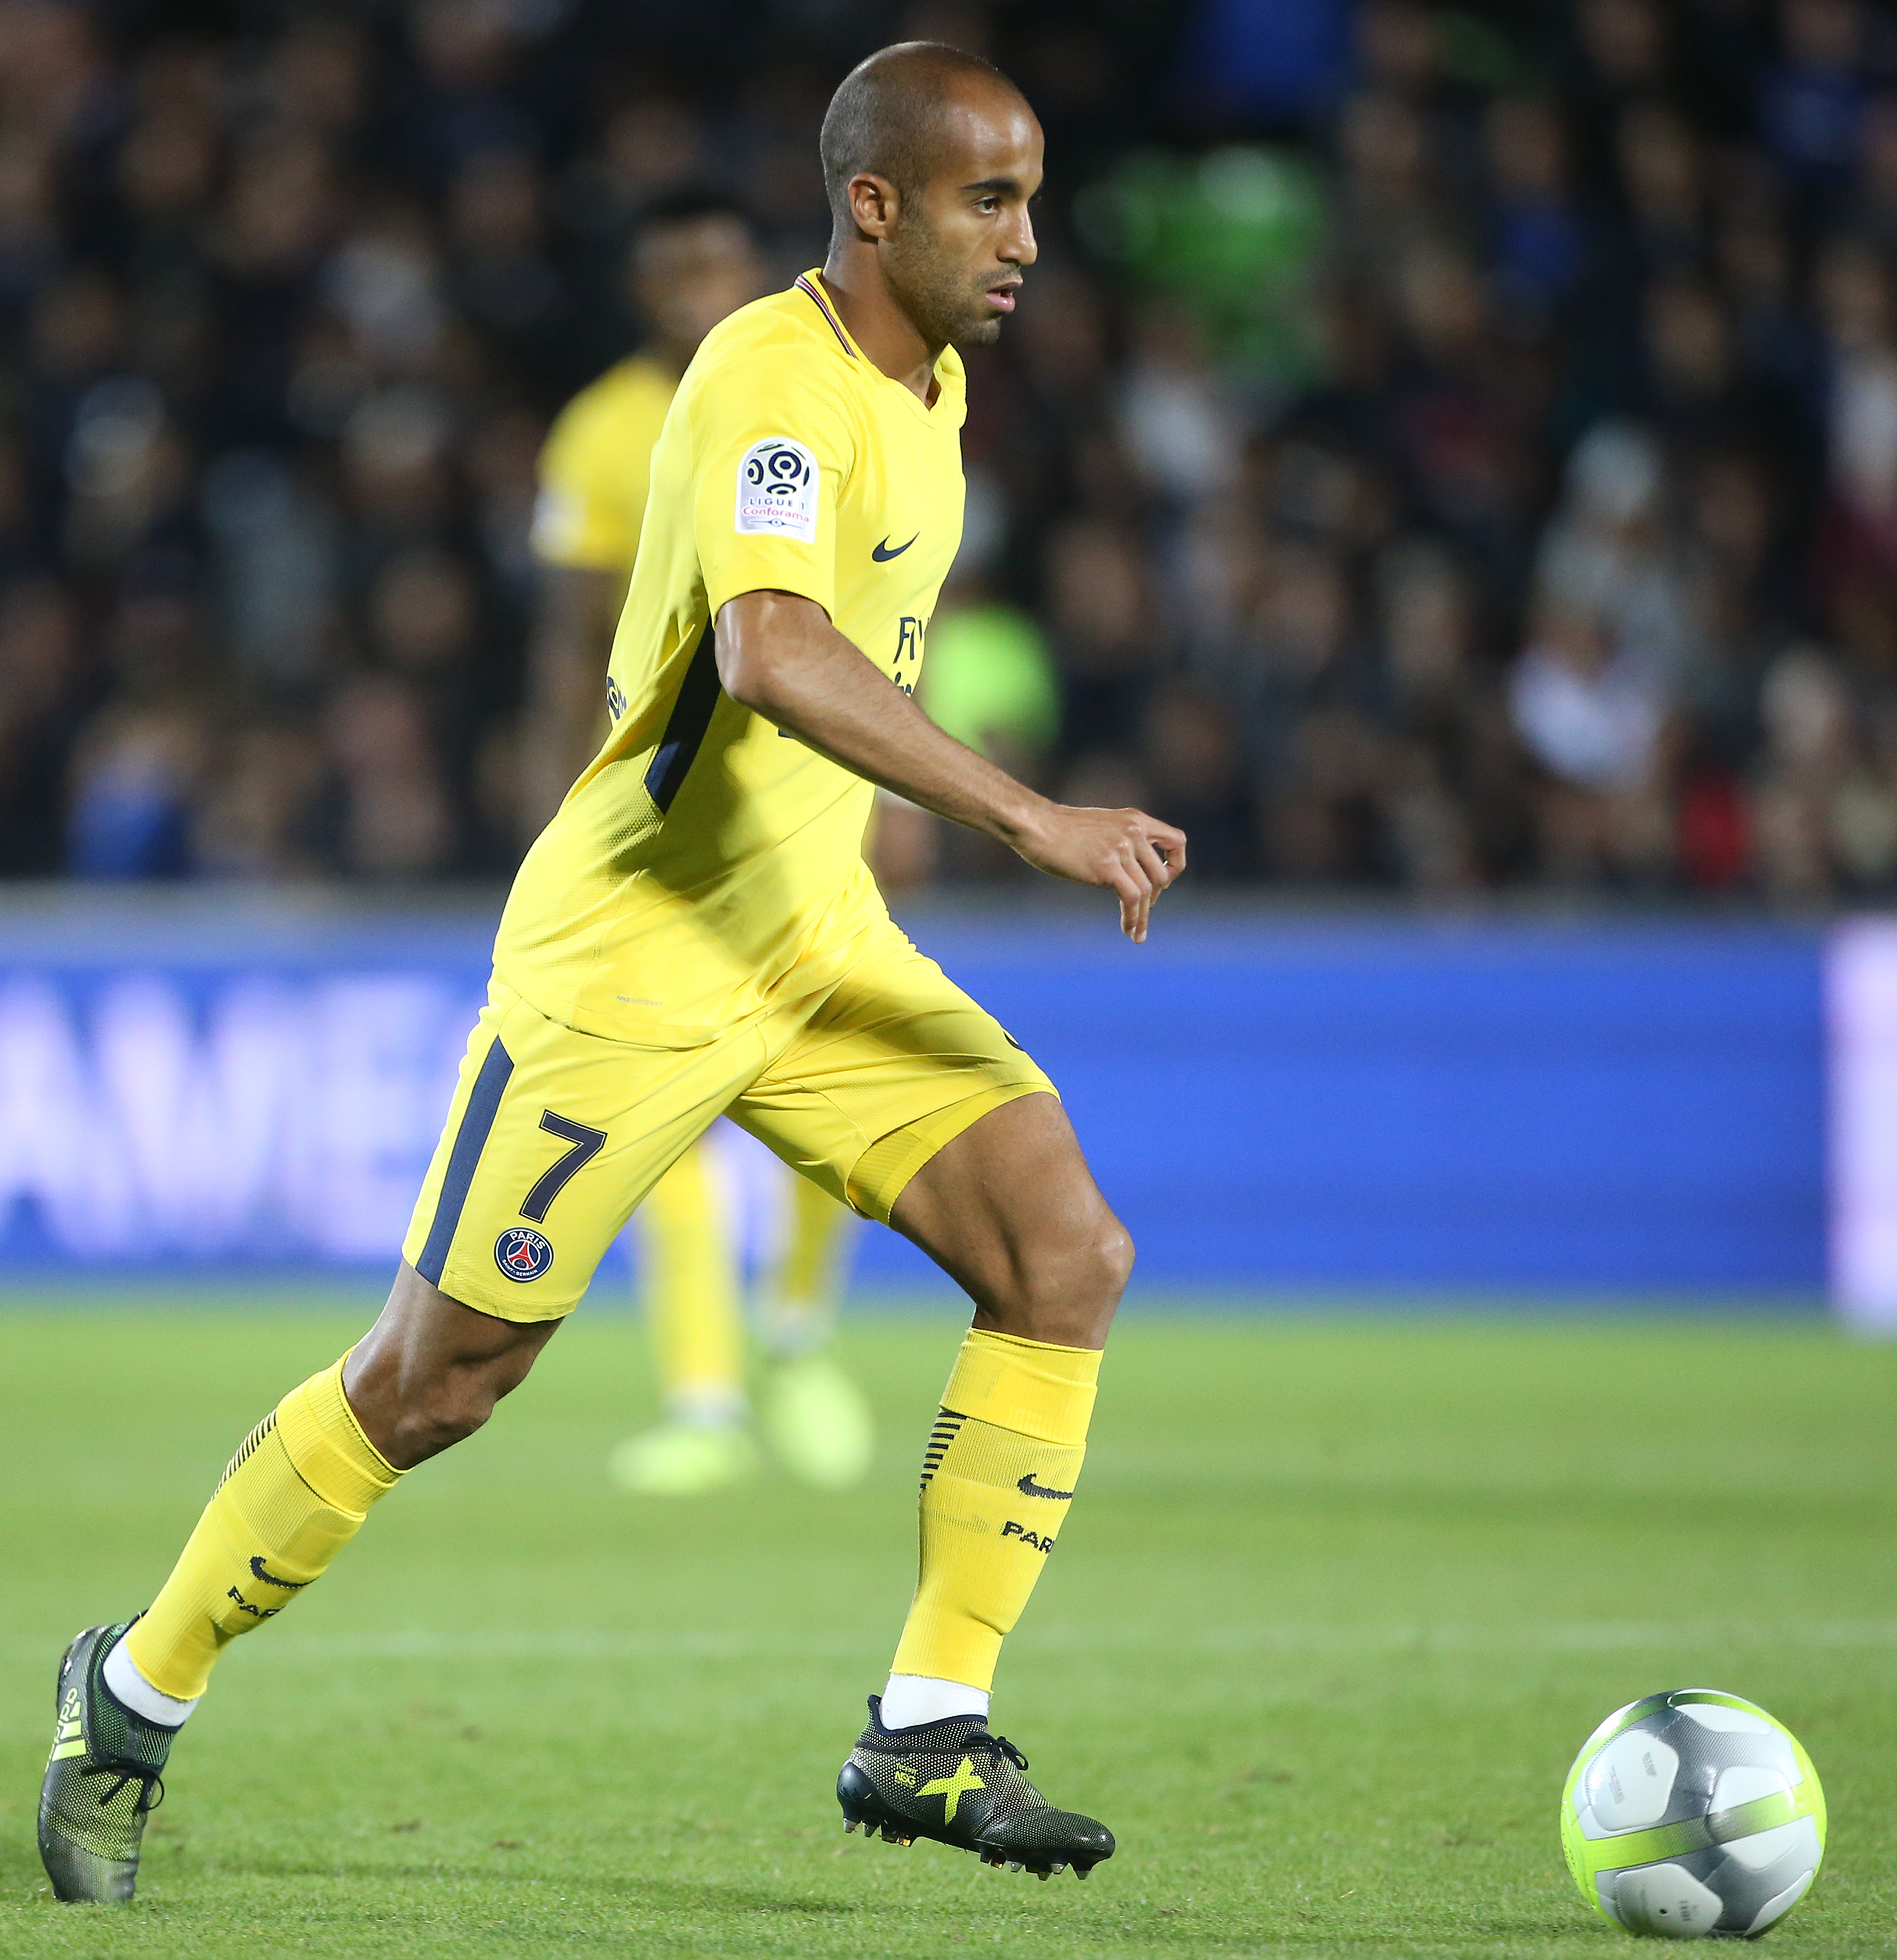 Lucas Moura In White: Tottenham Transfer News & Rumors